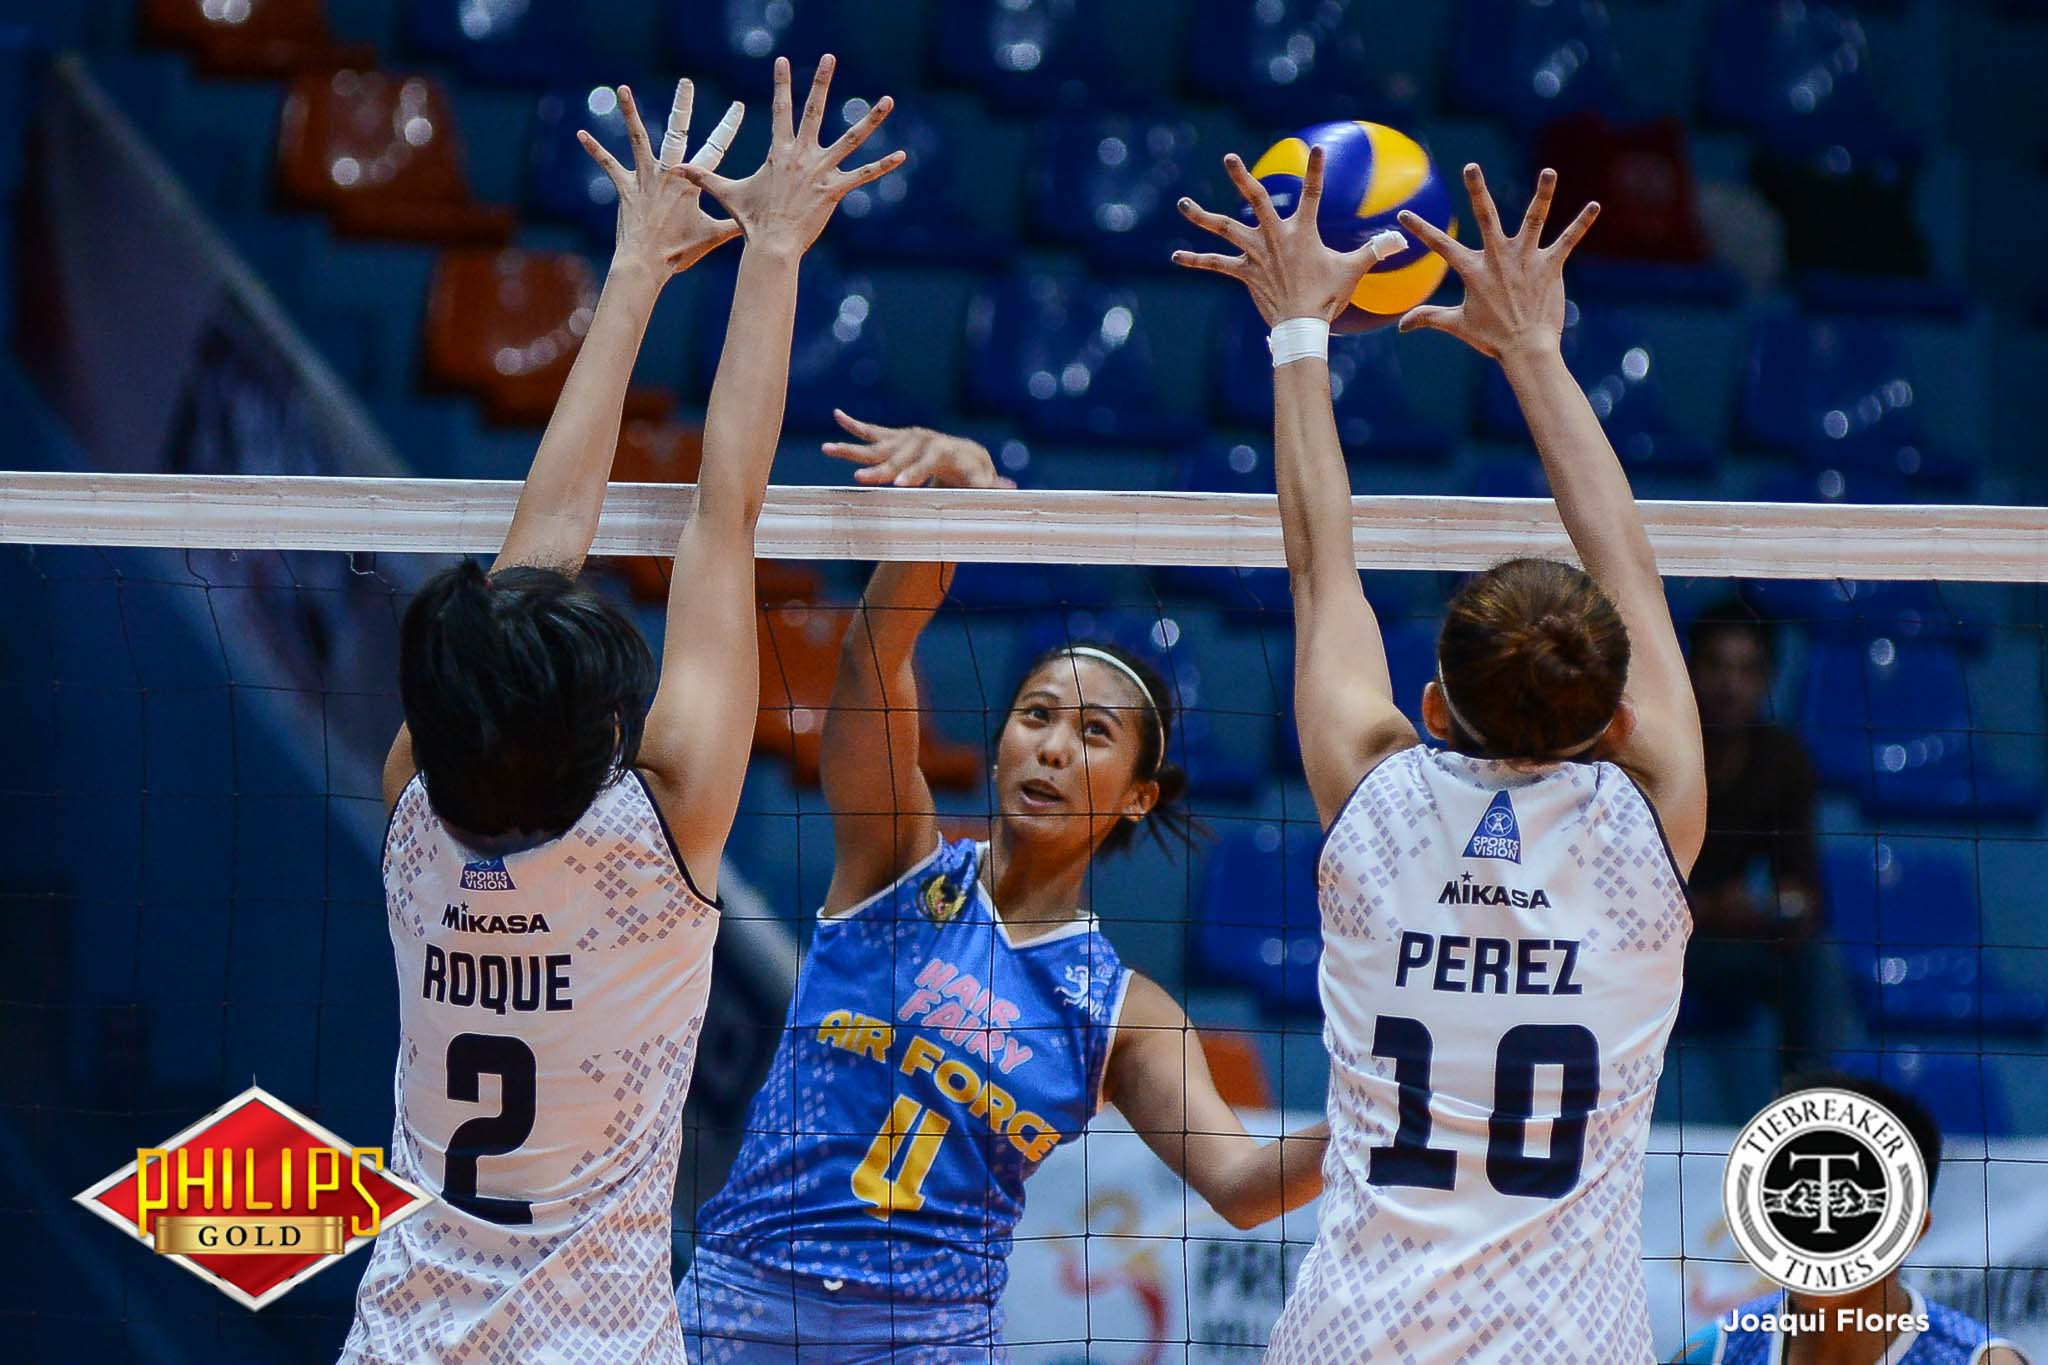 Philippine Sports News - Tiebreaker Times Hair Fairy-Air Force clinches semis slot, sends Akari-Adamson packing AdU News PVL Volleyball  Wendy Semana Mae Crisosotomo Jocemer Tapic Jema Galanza Jasper Jimenez Iari Yongco Airess Padda Air Force Jet Spikers Adamson Women's Volleyball 2017 PVL Women's Open Conference 2017 PVL Season